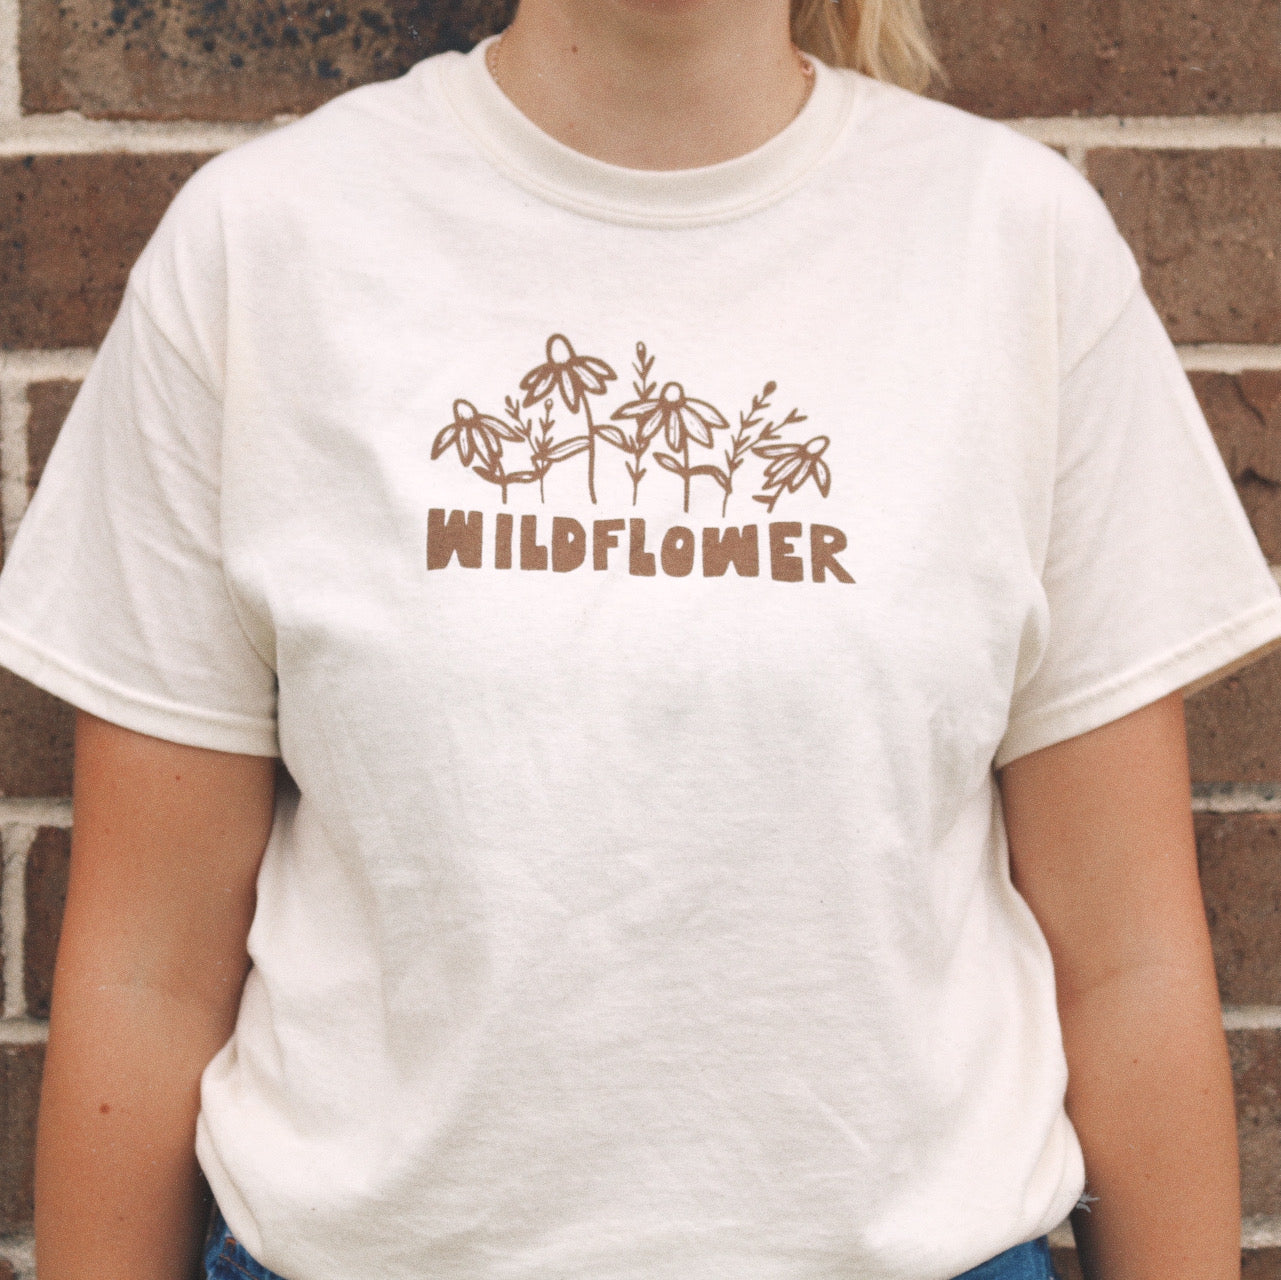 Wildflower - Shirt